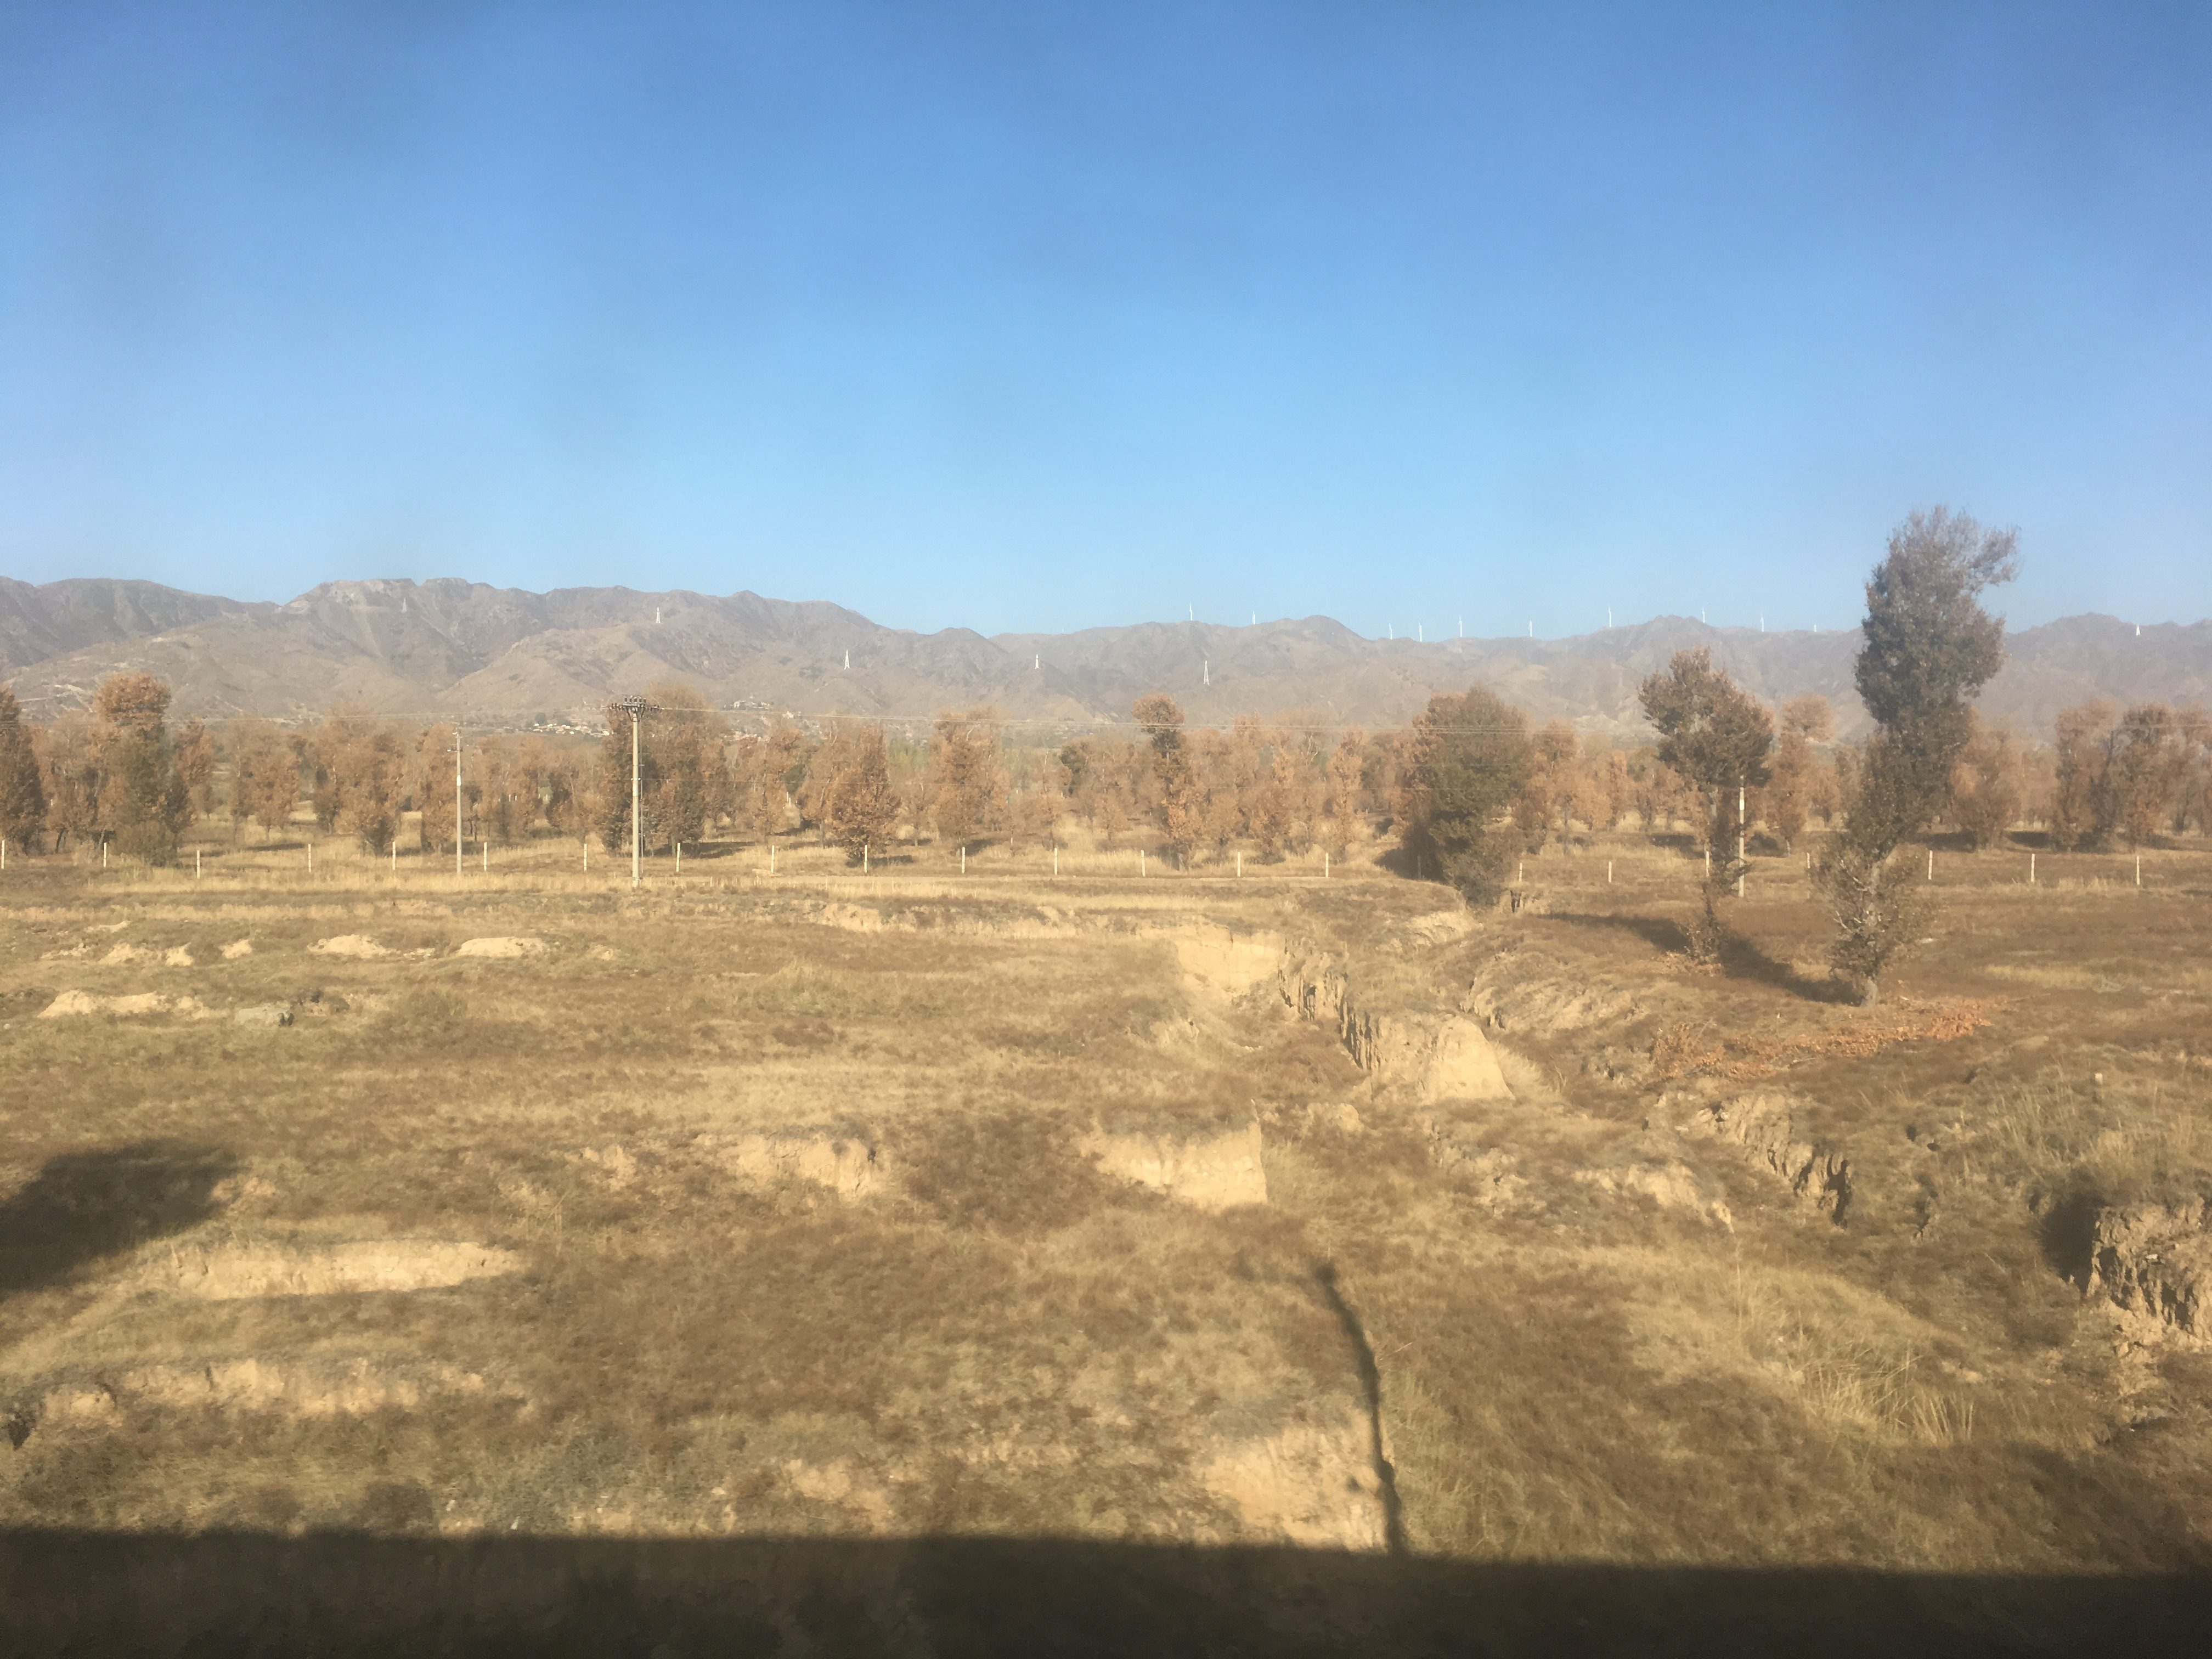 Starting to see planting and wind turbines in rural China